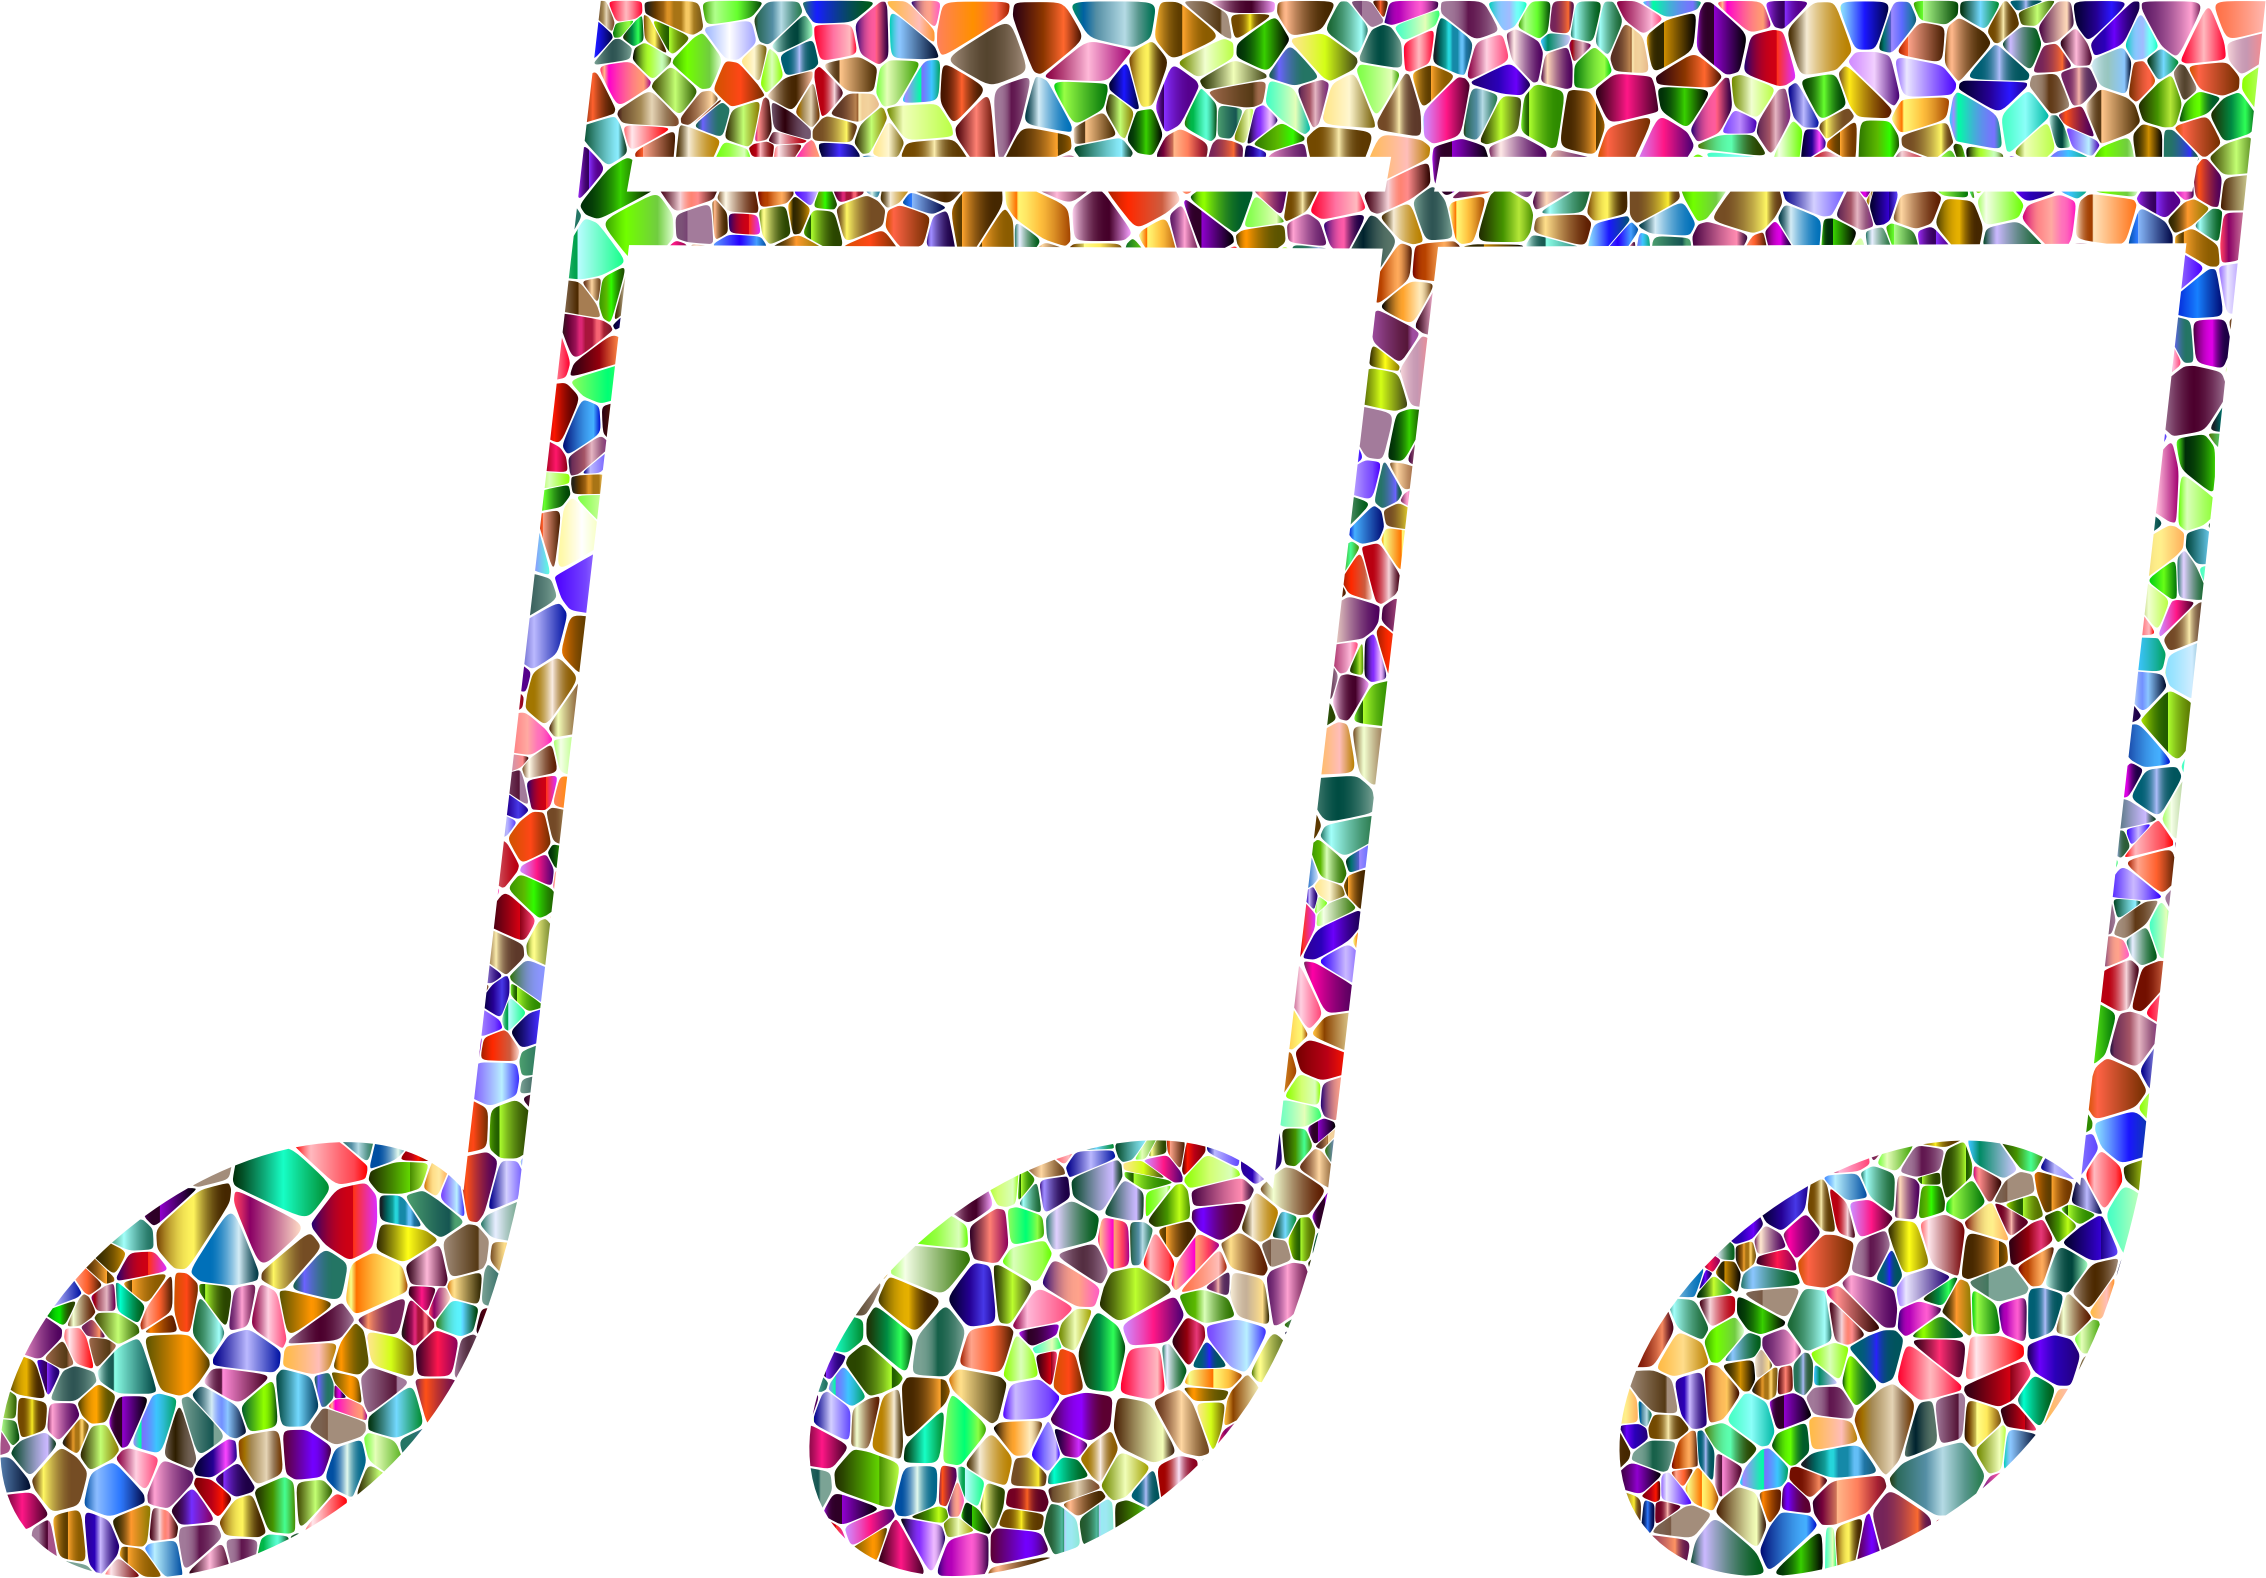 Vivid Chromatic Tiled Musical Note 8 by GDJ